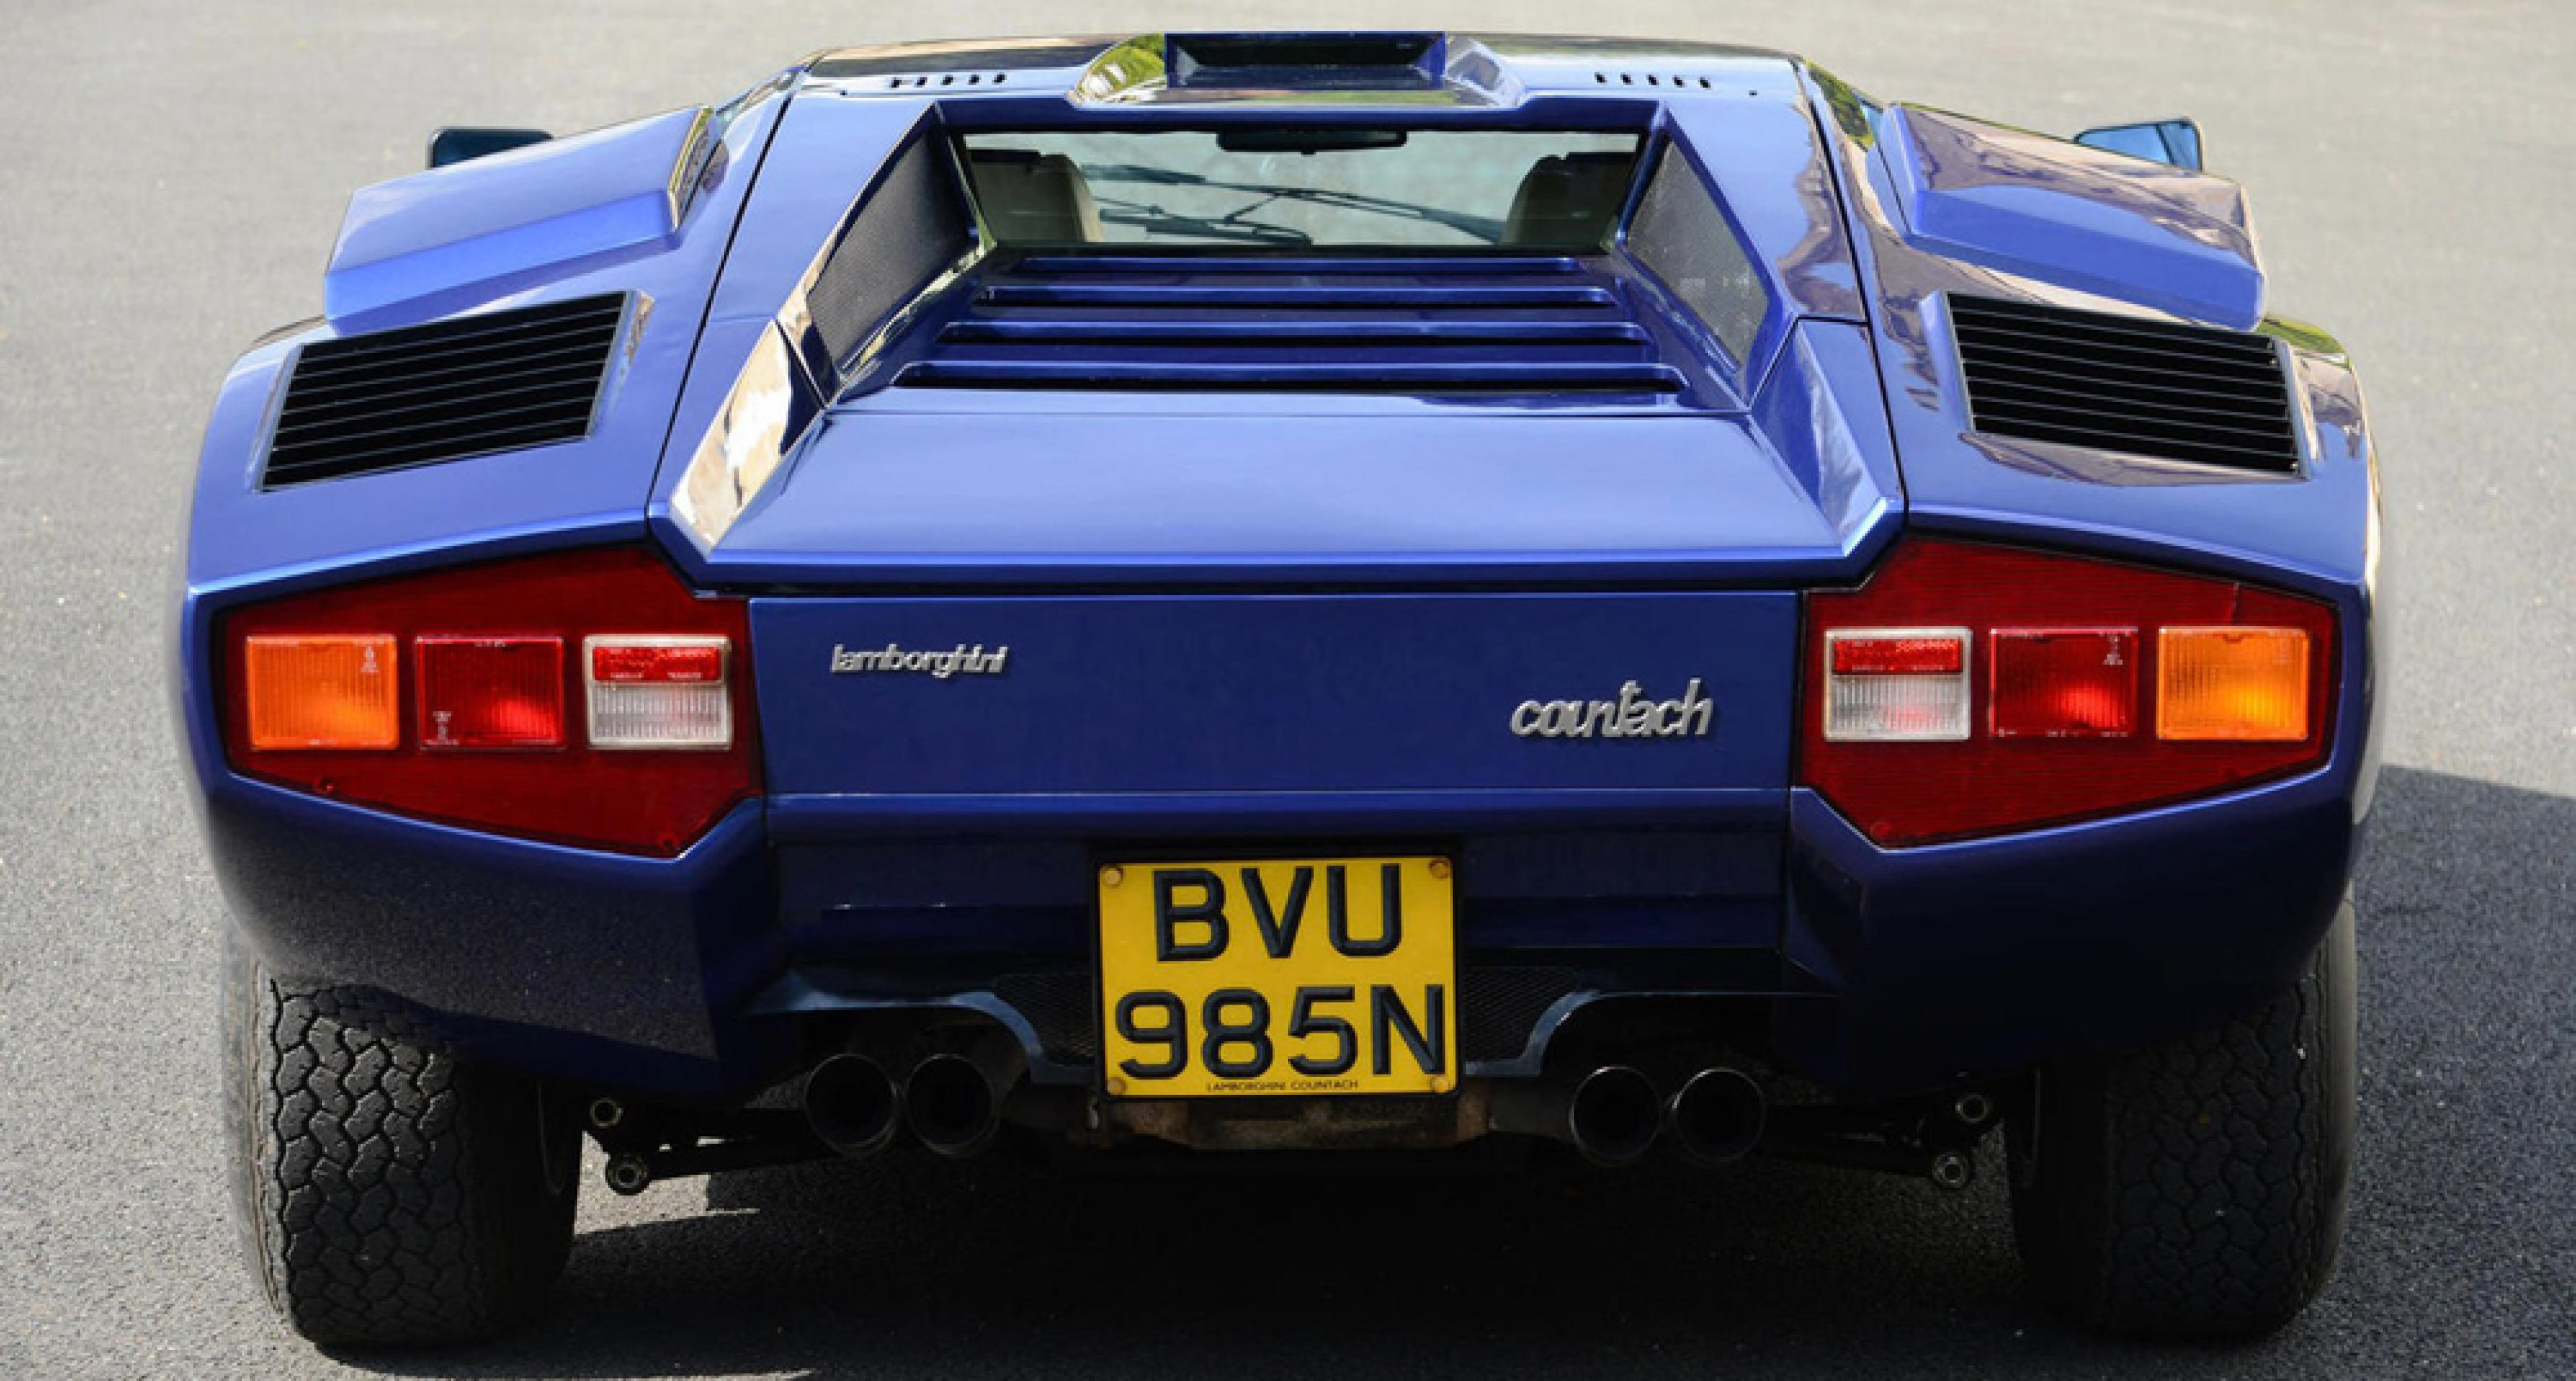 A 1975 Lamborghini Countach LP400 'Periscopica' to be sold at Bonhams' 2014 Goodwood Festival of Speed sale